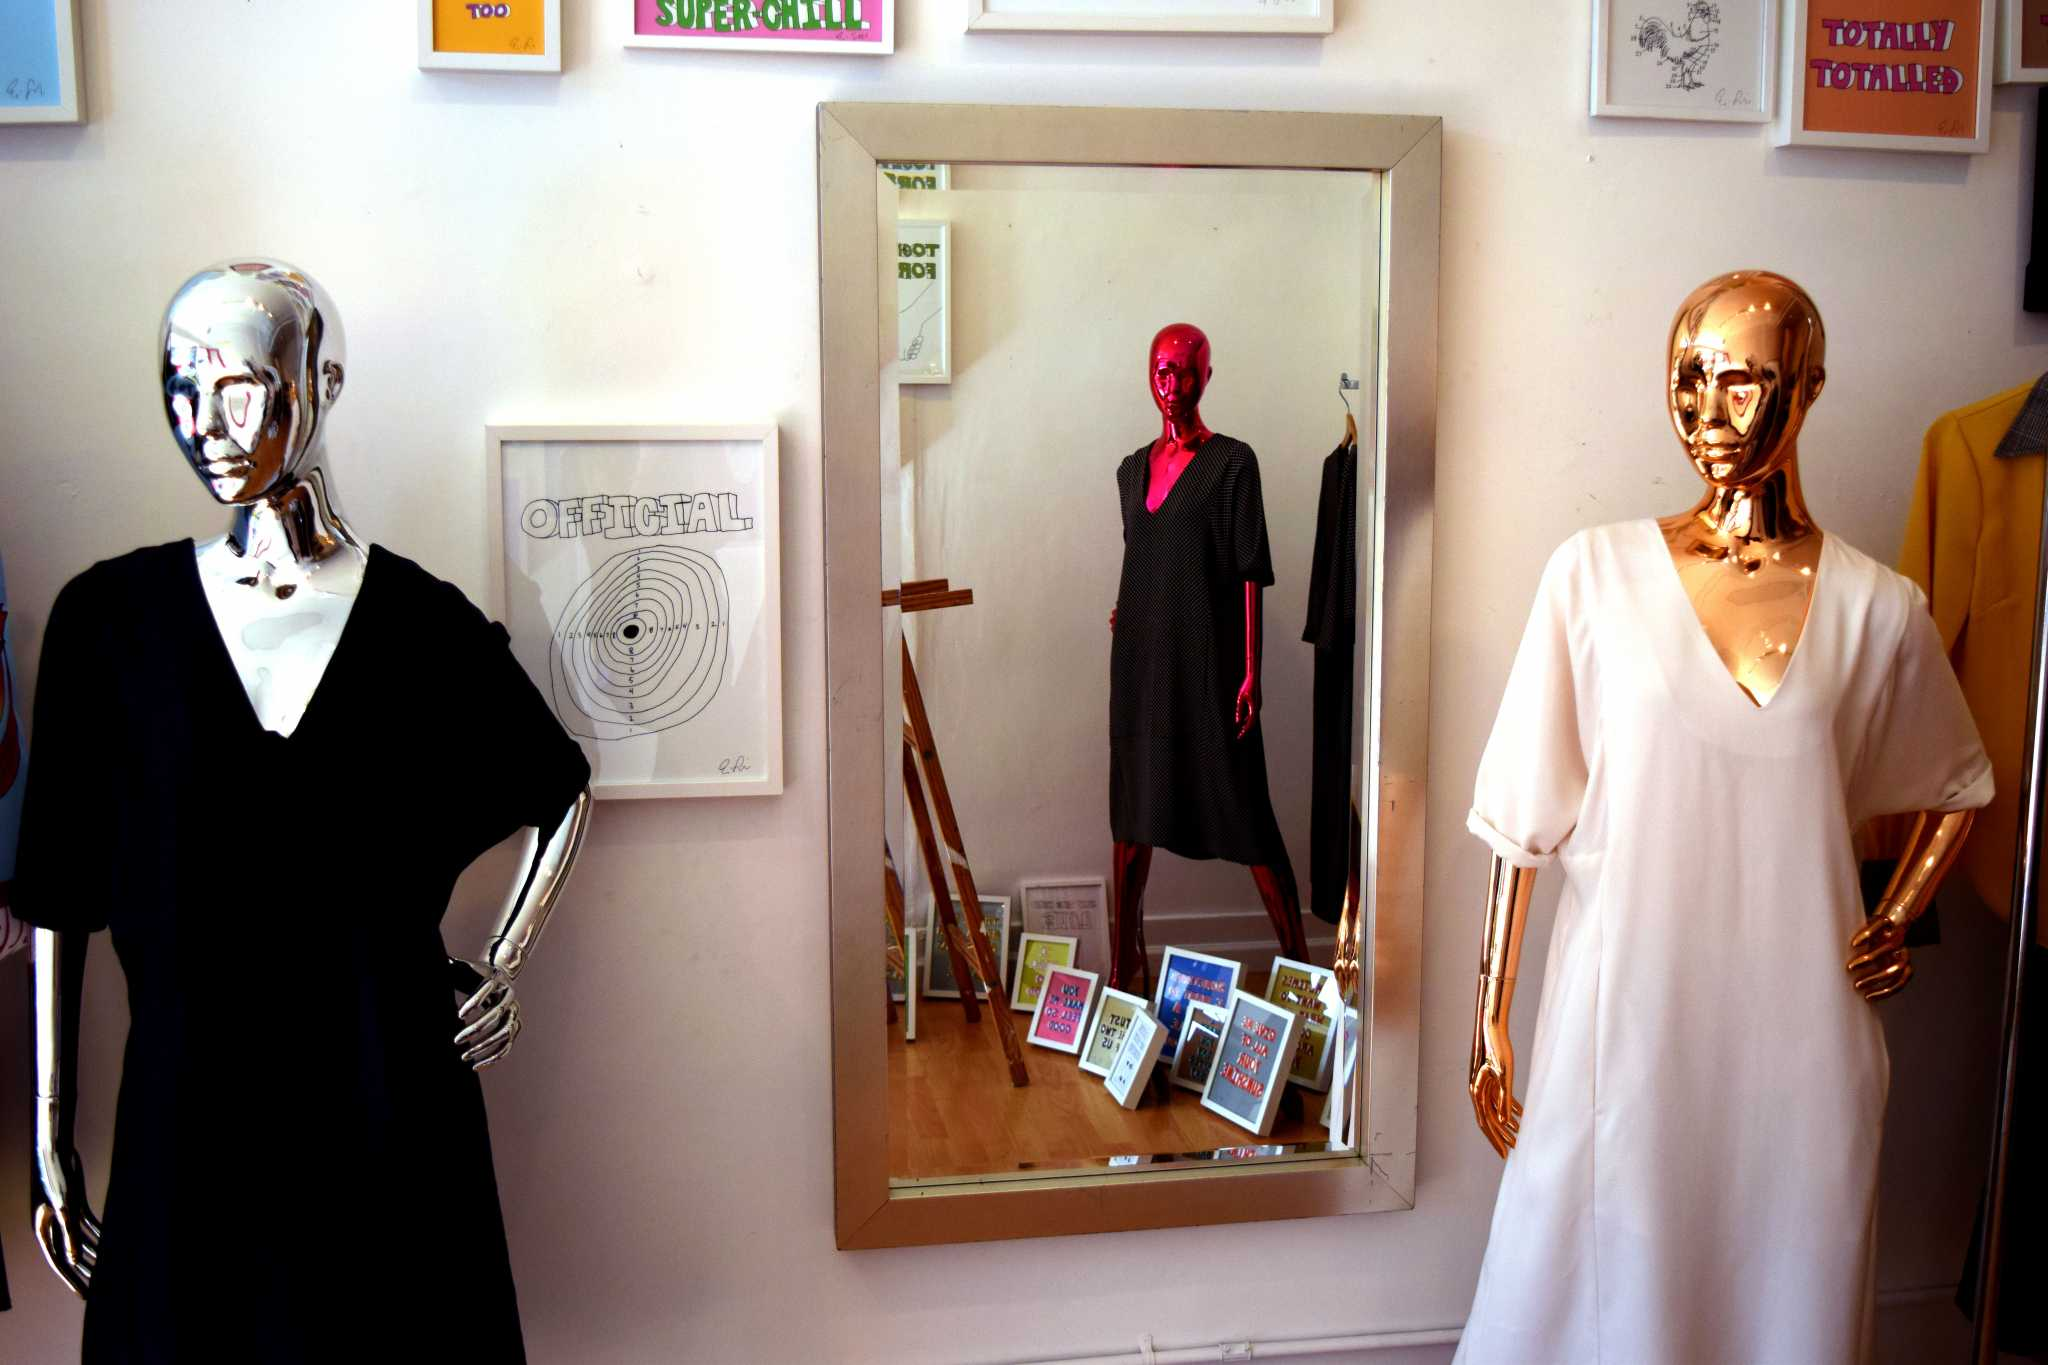 Apparel Design lecturer inspires with new boutique in the Mission